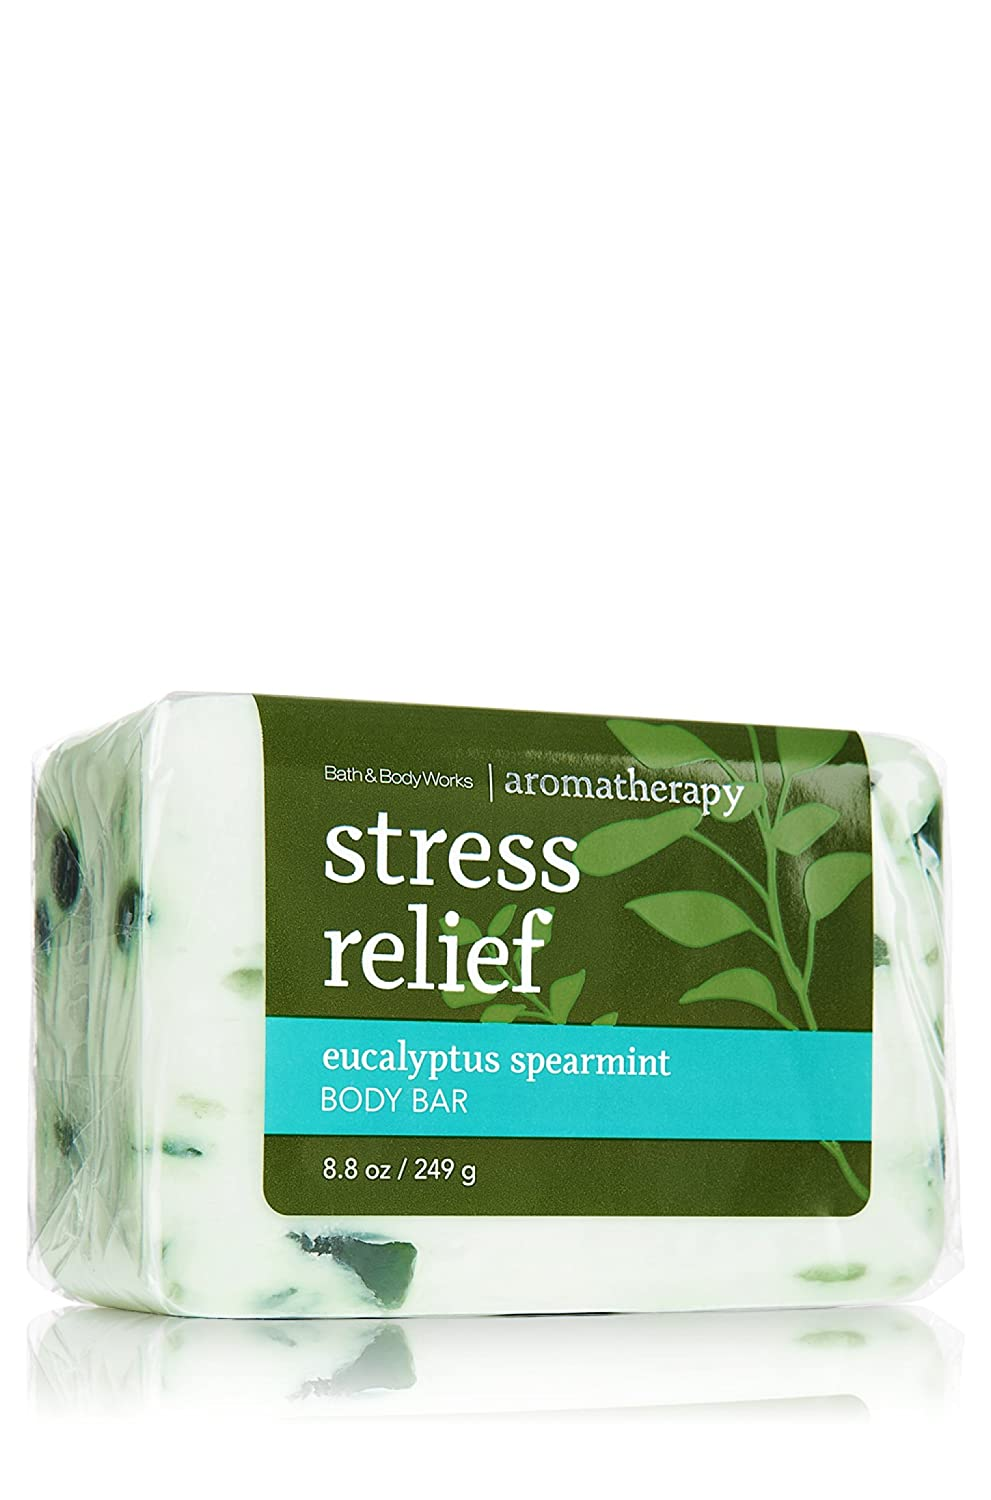 Stress Relief Eucalyptus Spearmint Body Bar Soap 8.8oz/249g egor kuzmin stress relief how to